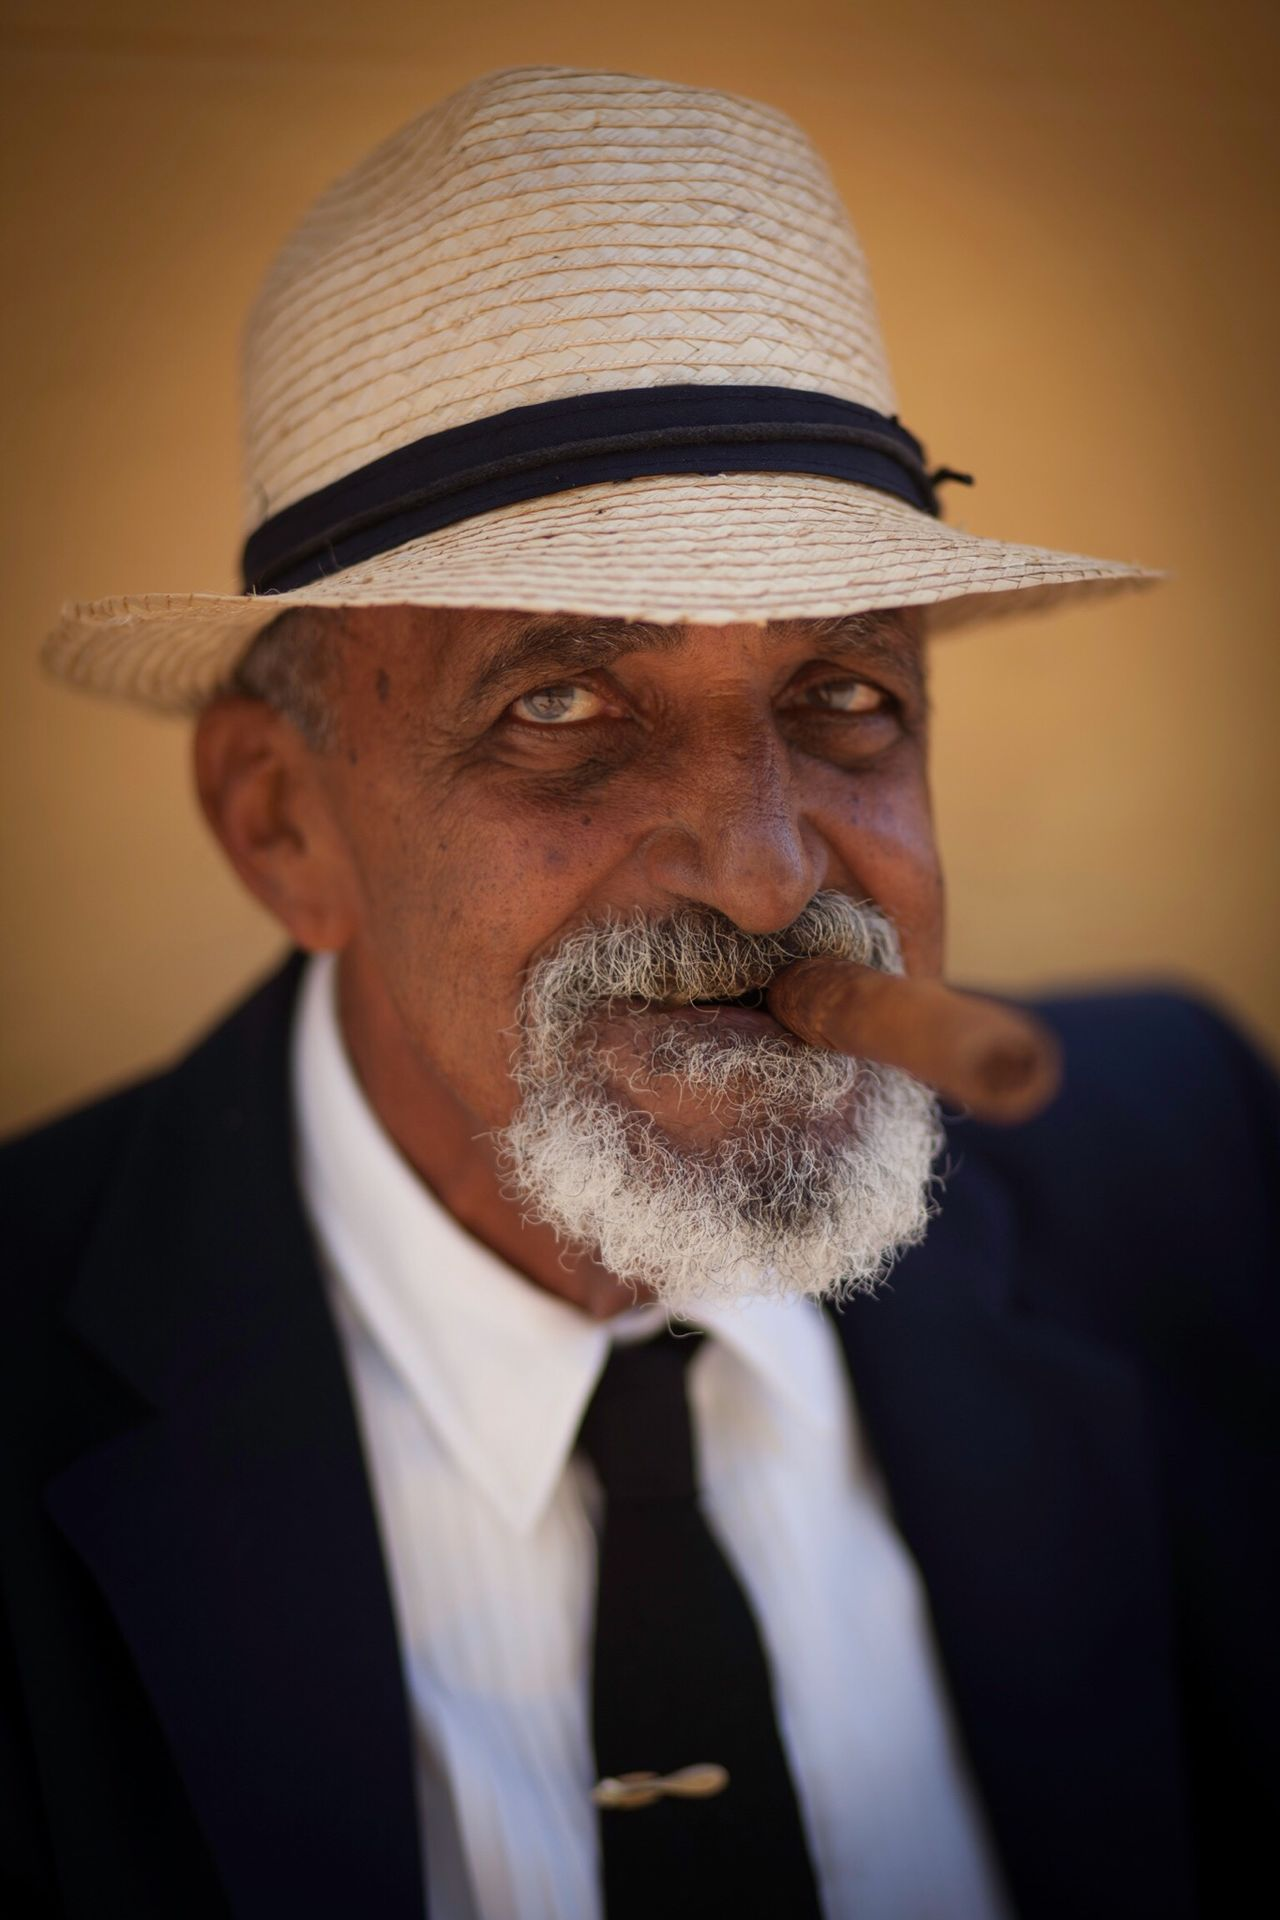 Potrait Cuban People Sigar Old Man Trinidad Up Close Street Photography Vacation Travel Holiday Havana Cuban Cuba People The Portraitist - 2016 EyeEm Awards